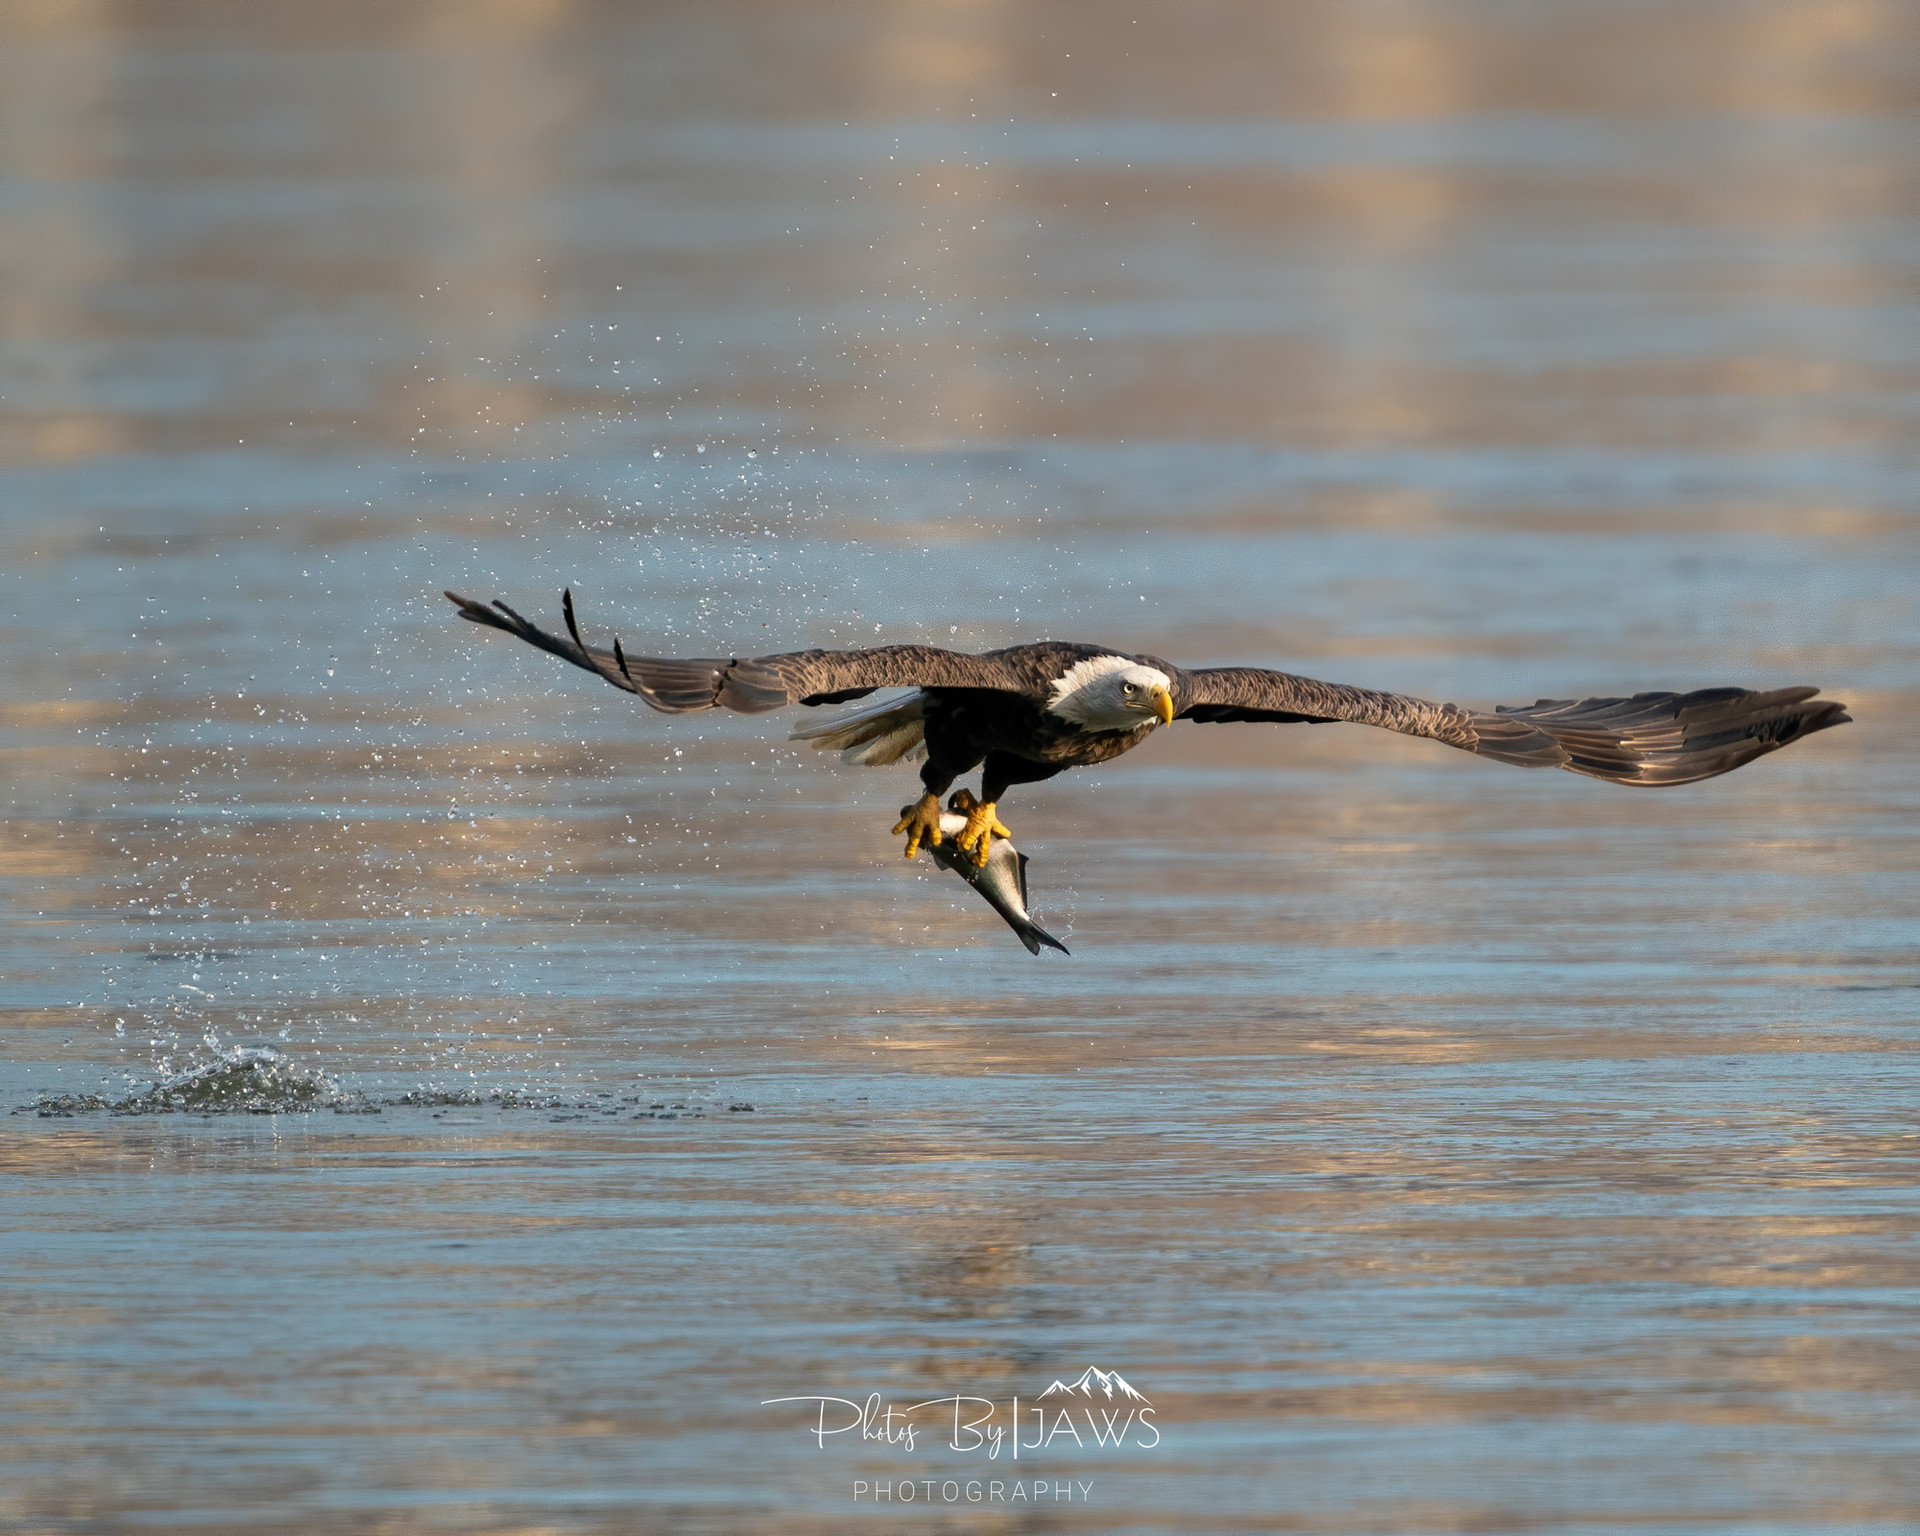 Bald eagle catching lunch